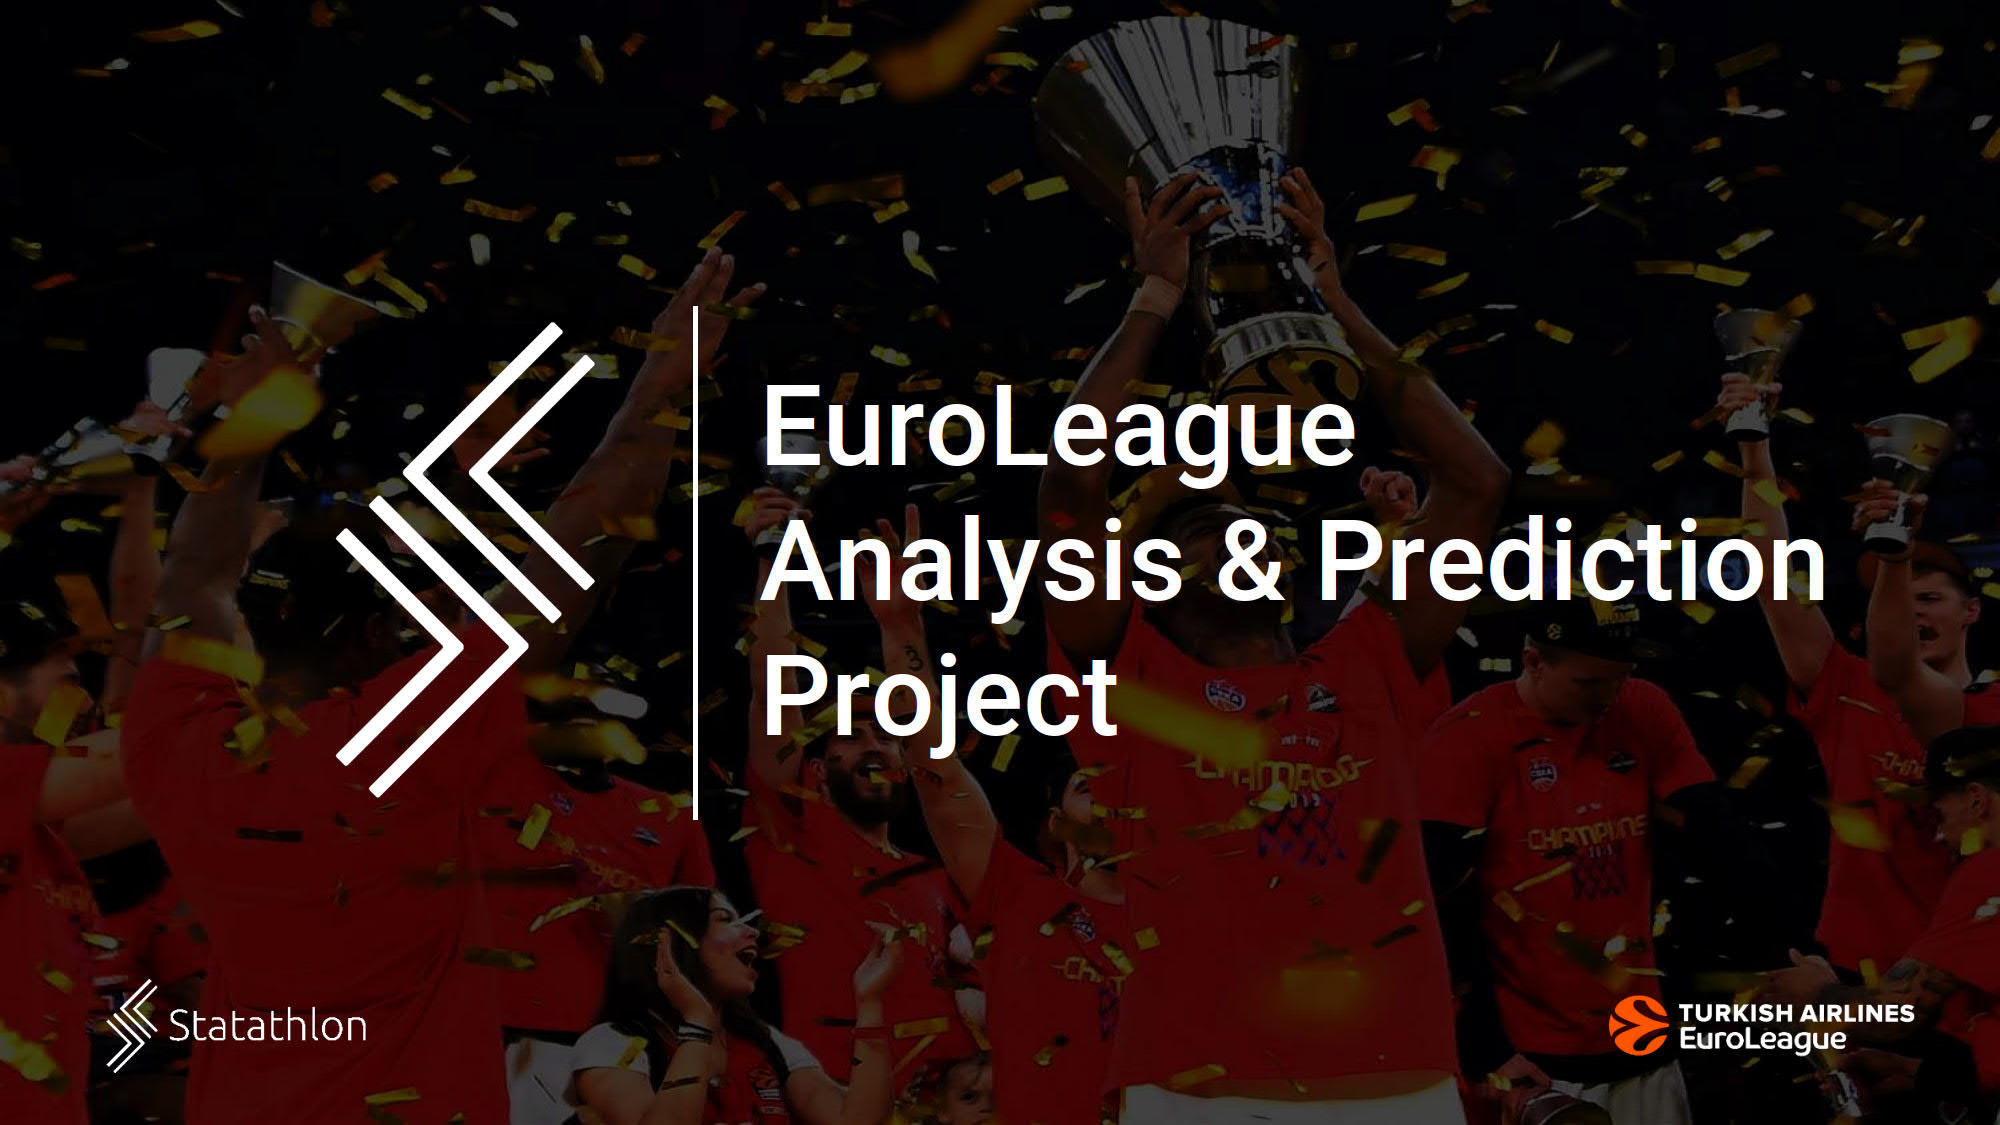 EuroLeague Analysis & prediction Project Main Image